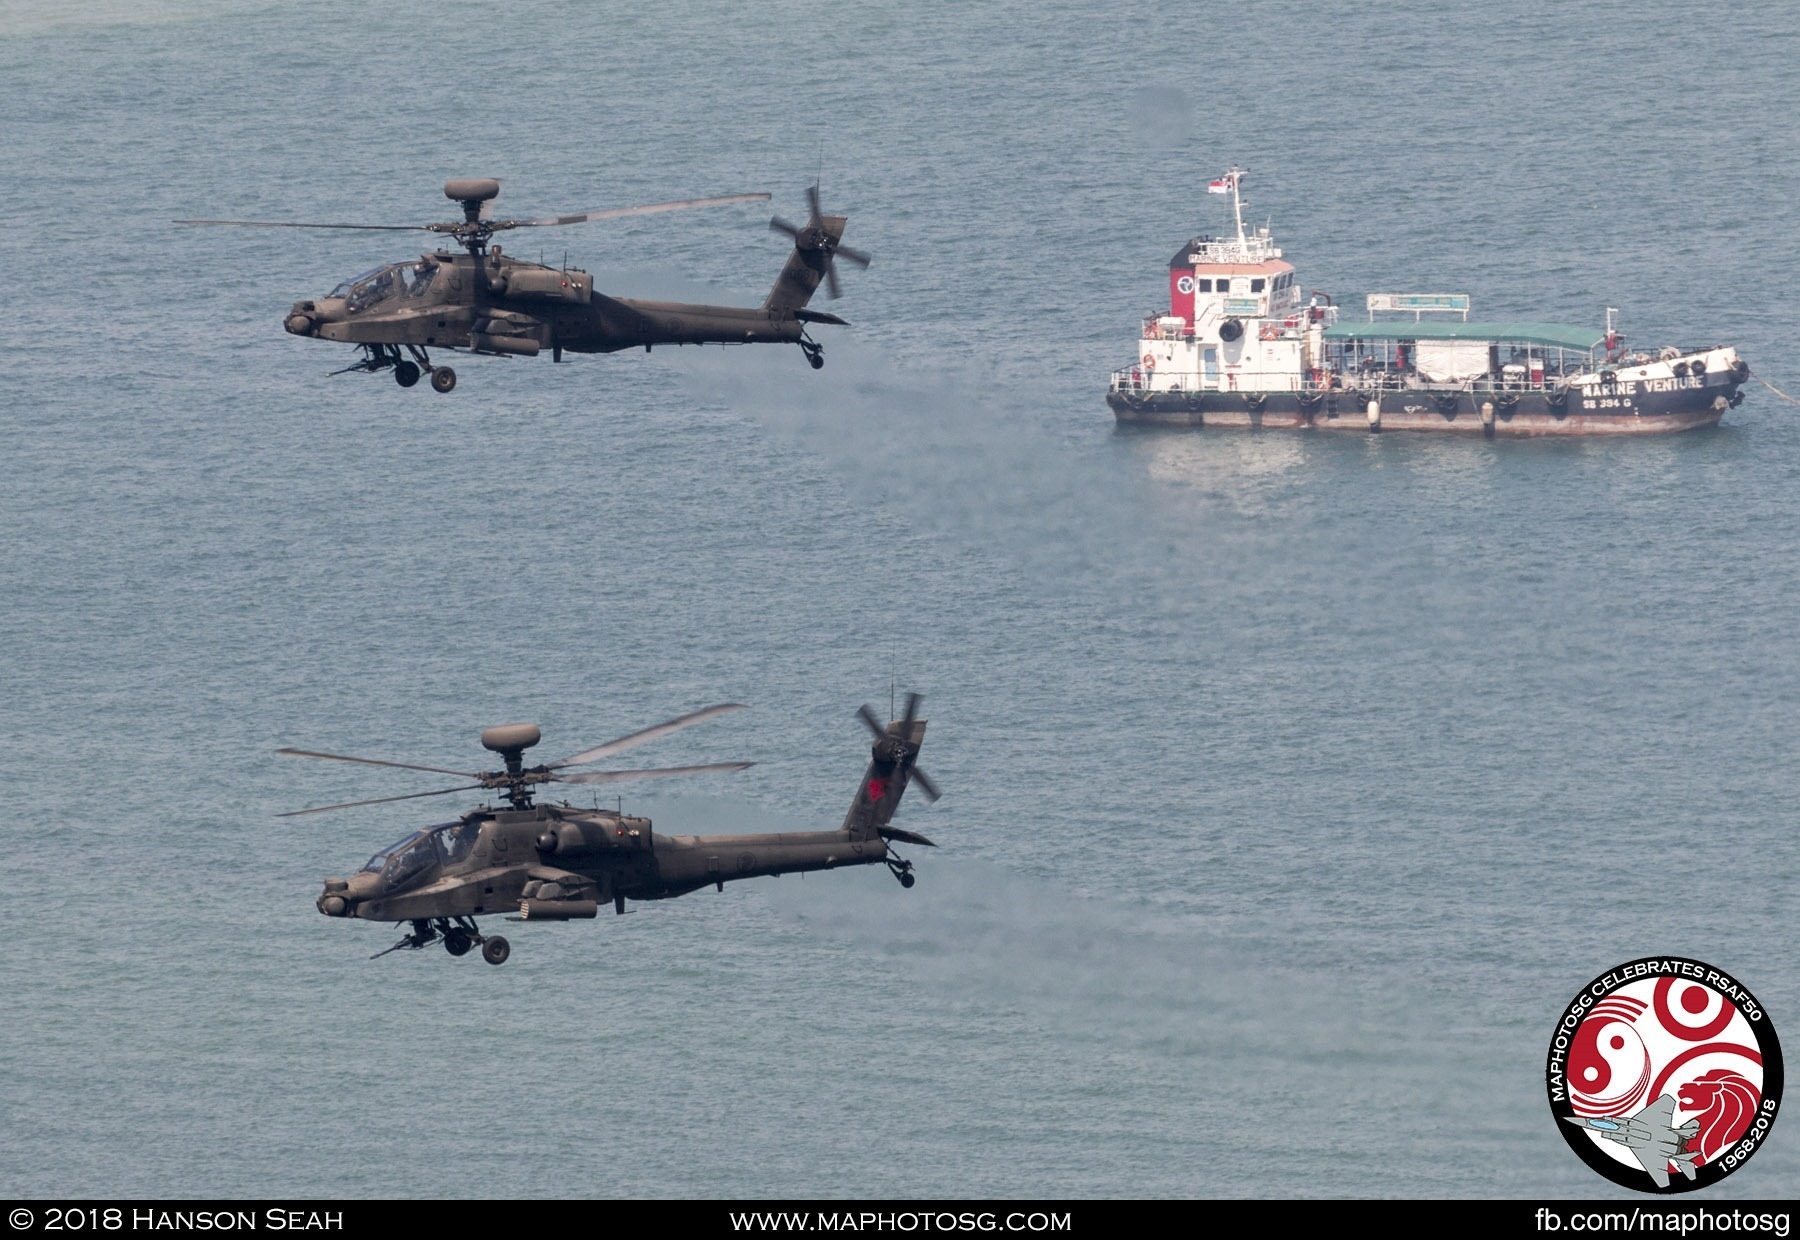 Completing their performance, the two Apaches made a round over the Marina Barrage.